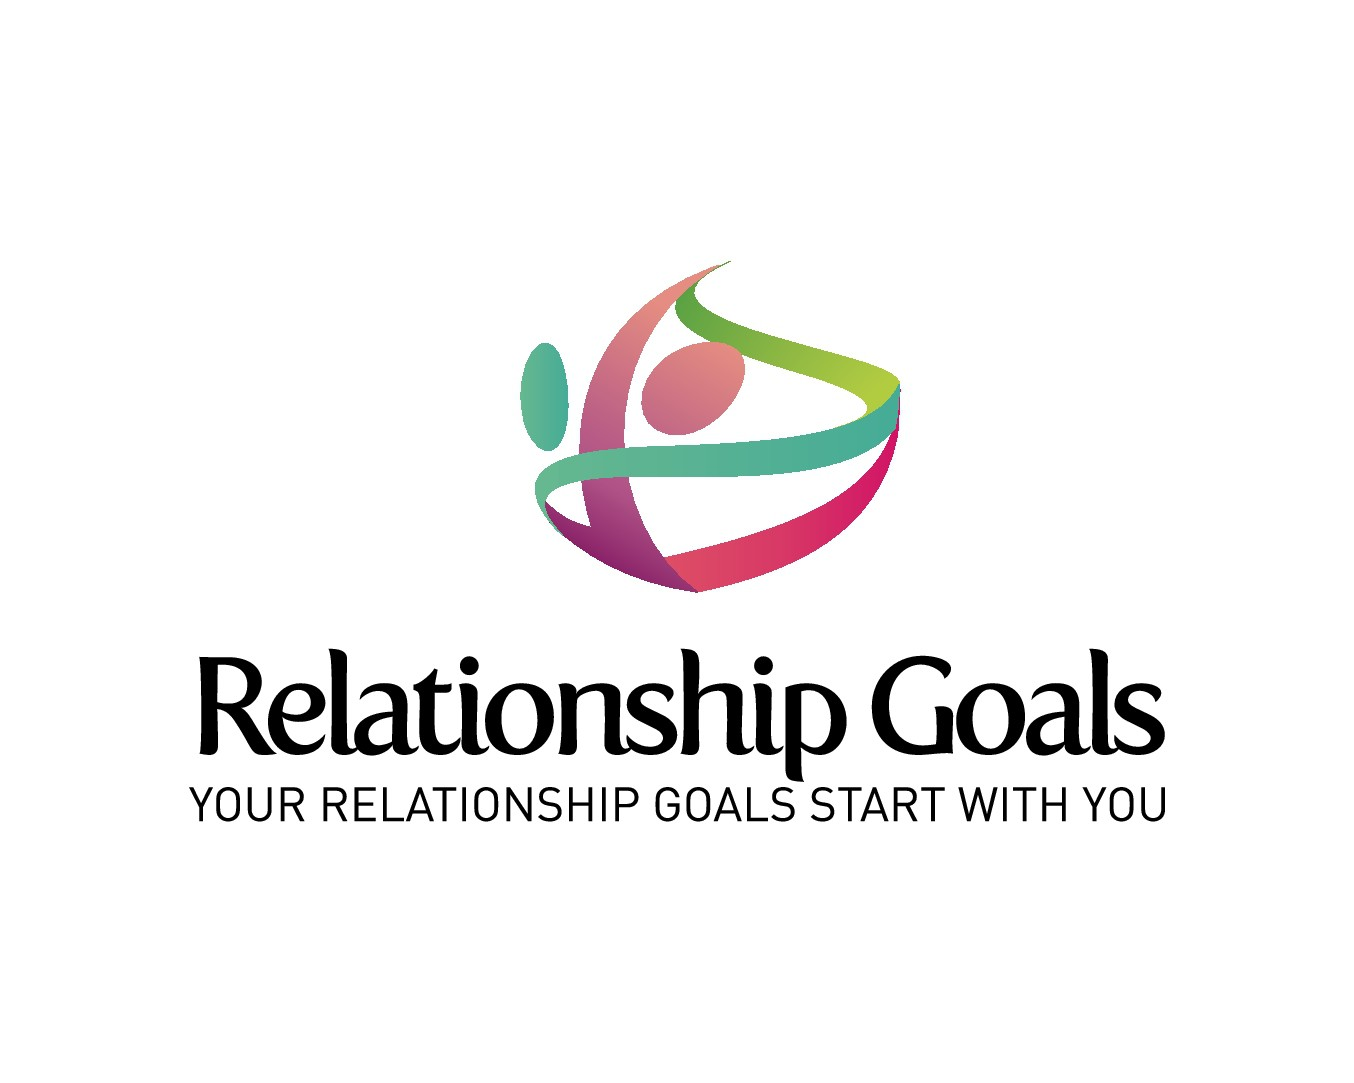 Create a modern happy and upbeat website and logo for Relationship Goals